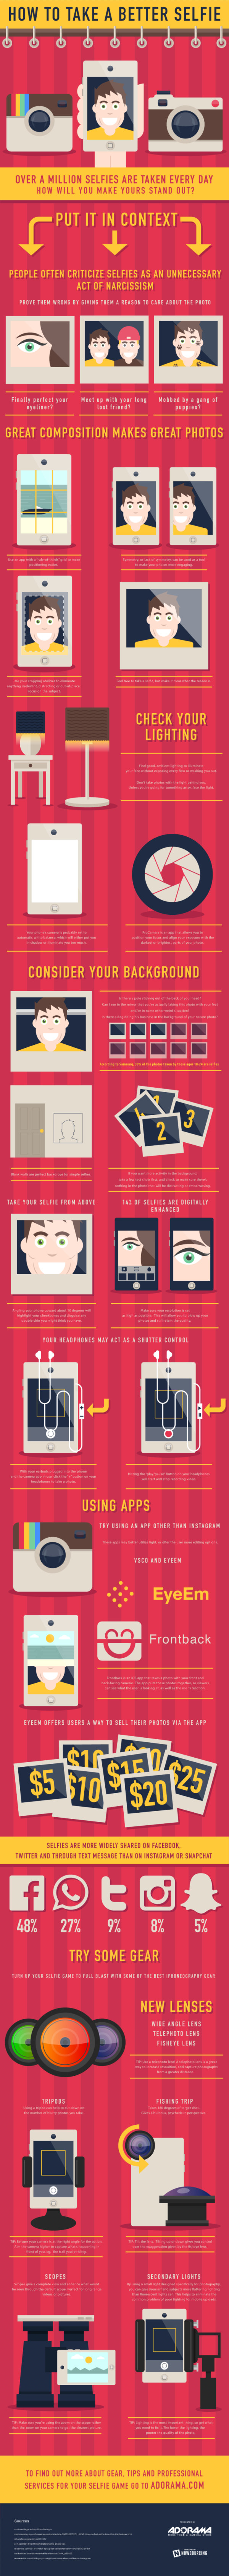 An Infographic on How to Take Better Selfies